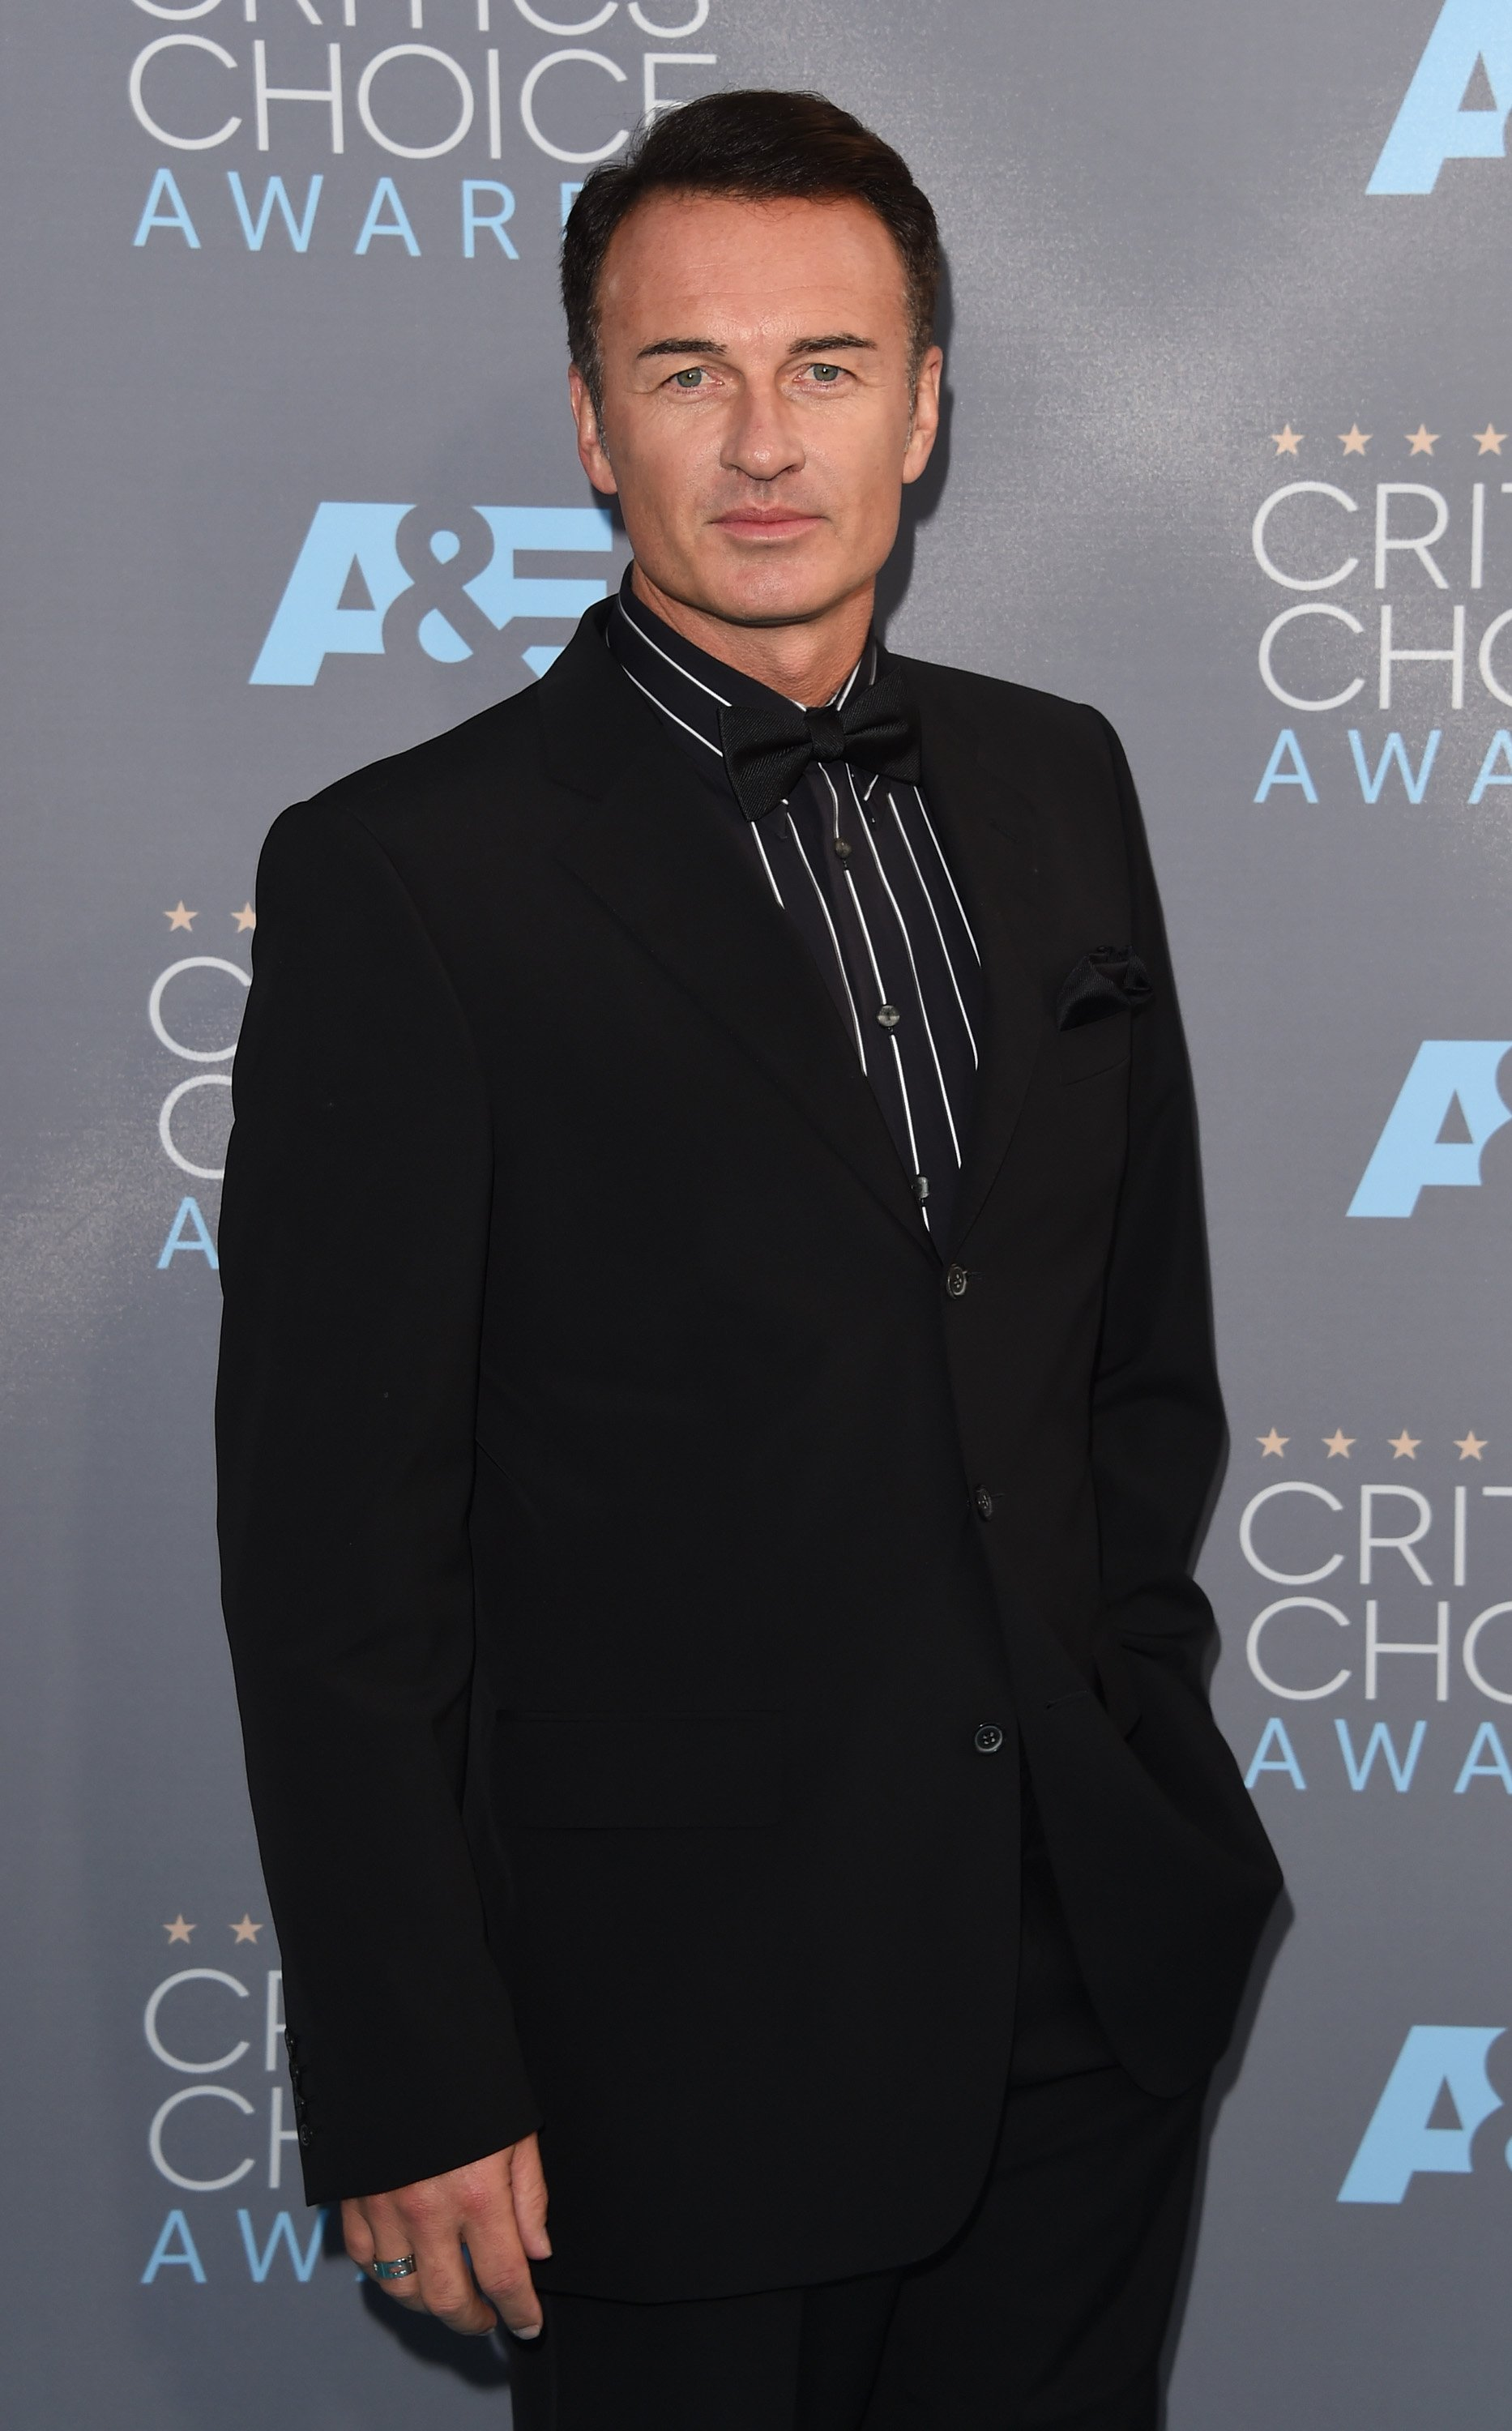 Julian McMahon attends the 21st Annual Critics' Choice Awards at Barker Hangar on January 17, 2016, in Santa Monica, California. | Source: Getty Images.